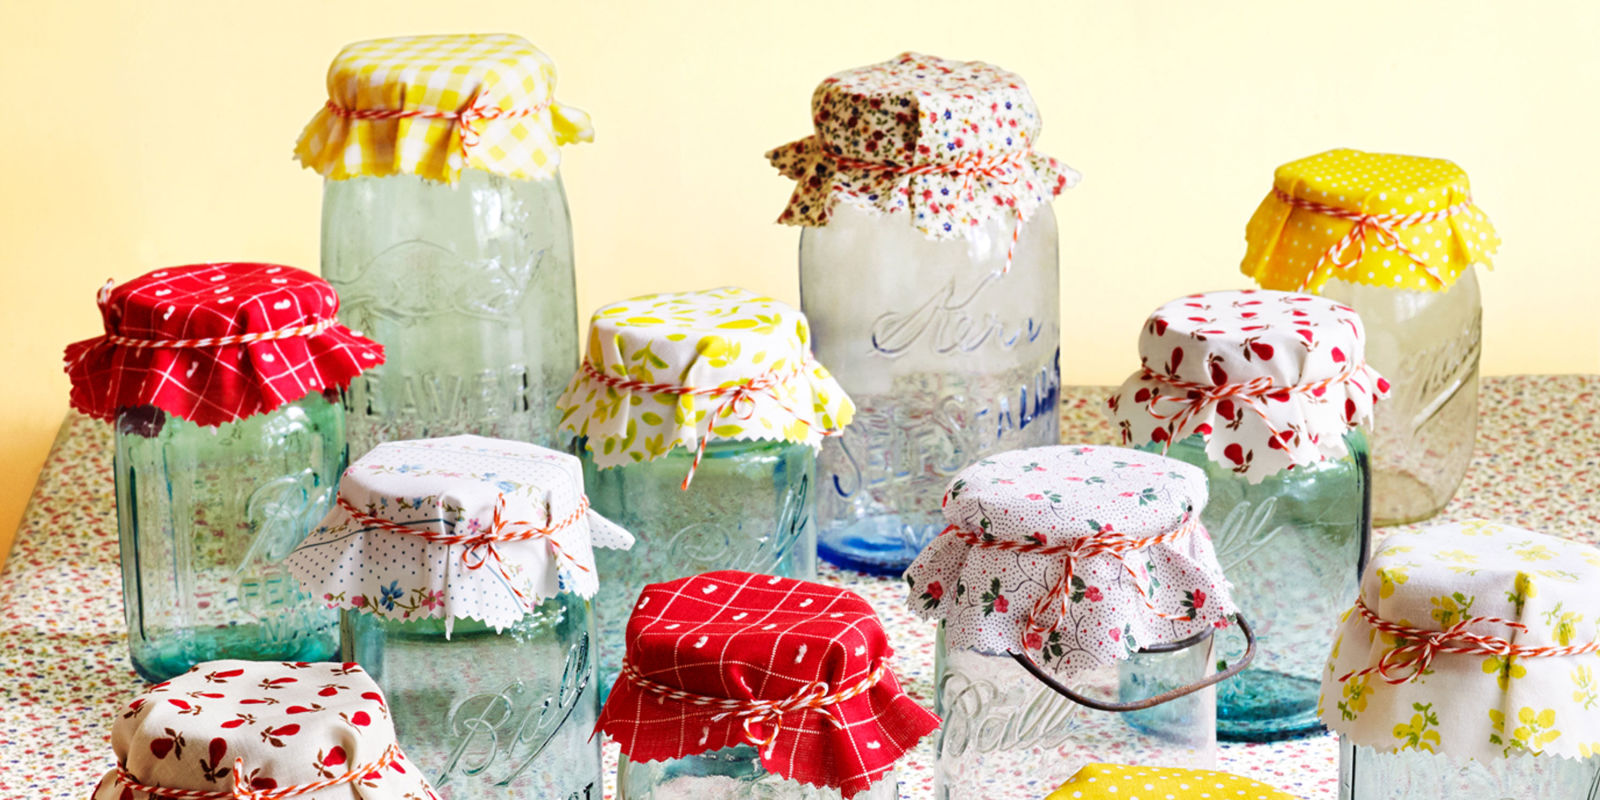 50 Great Mason Jar Ideas- Easy Uses for Mason Jars